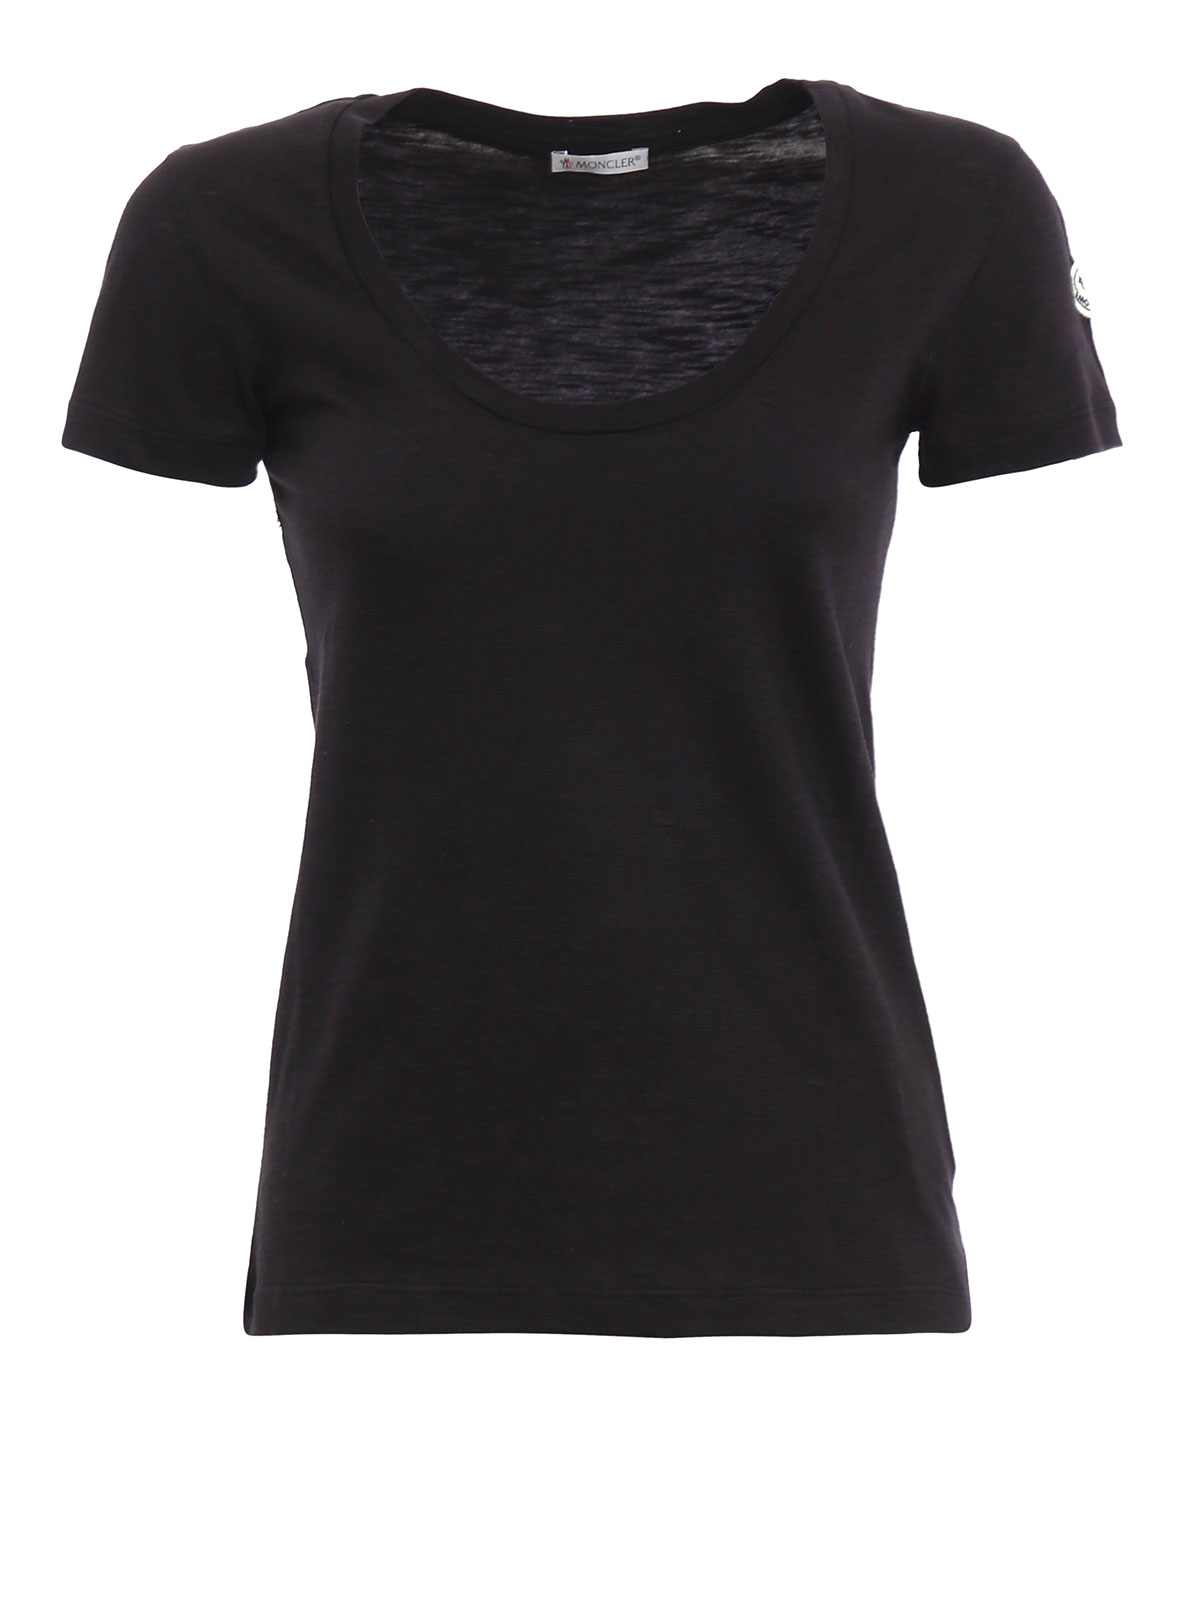 Scoop neck t shirt by moncler t shirts shop online at for Scoop neck t shirt